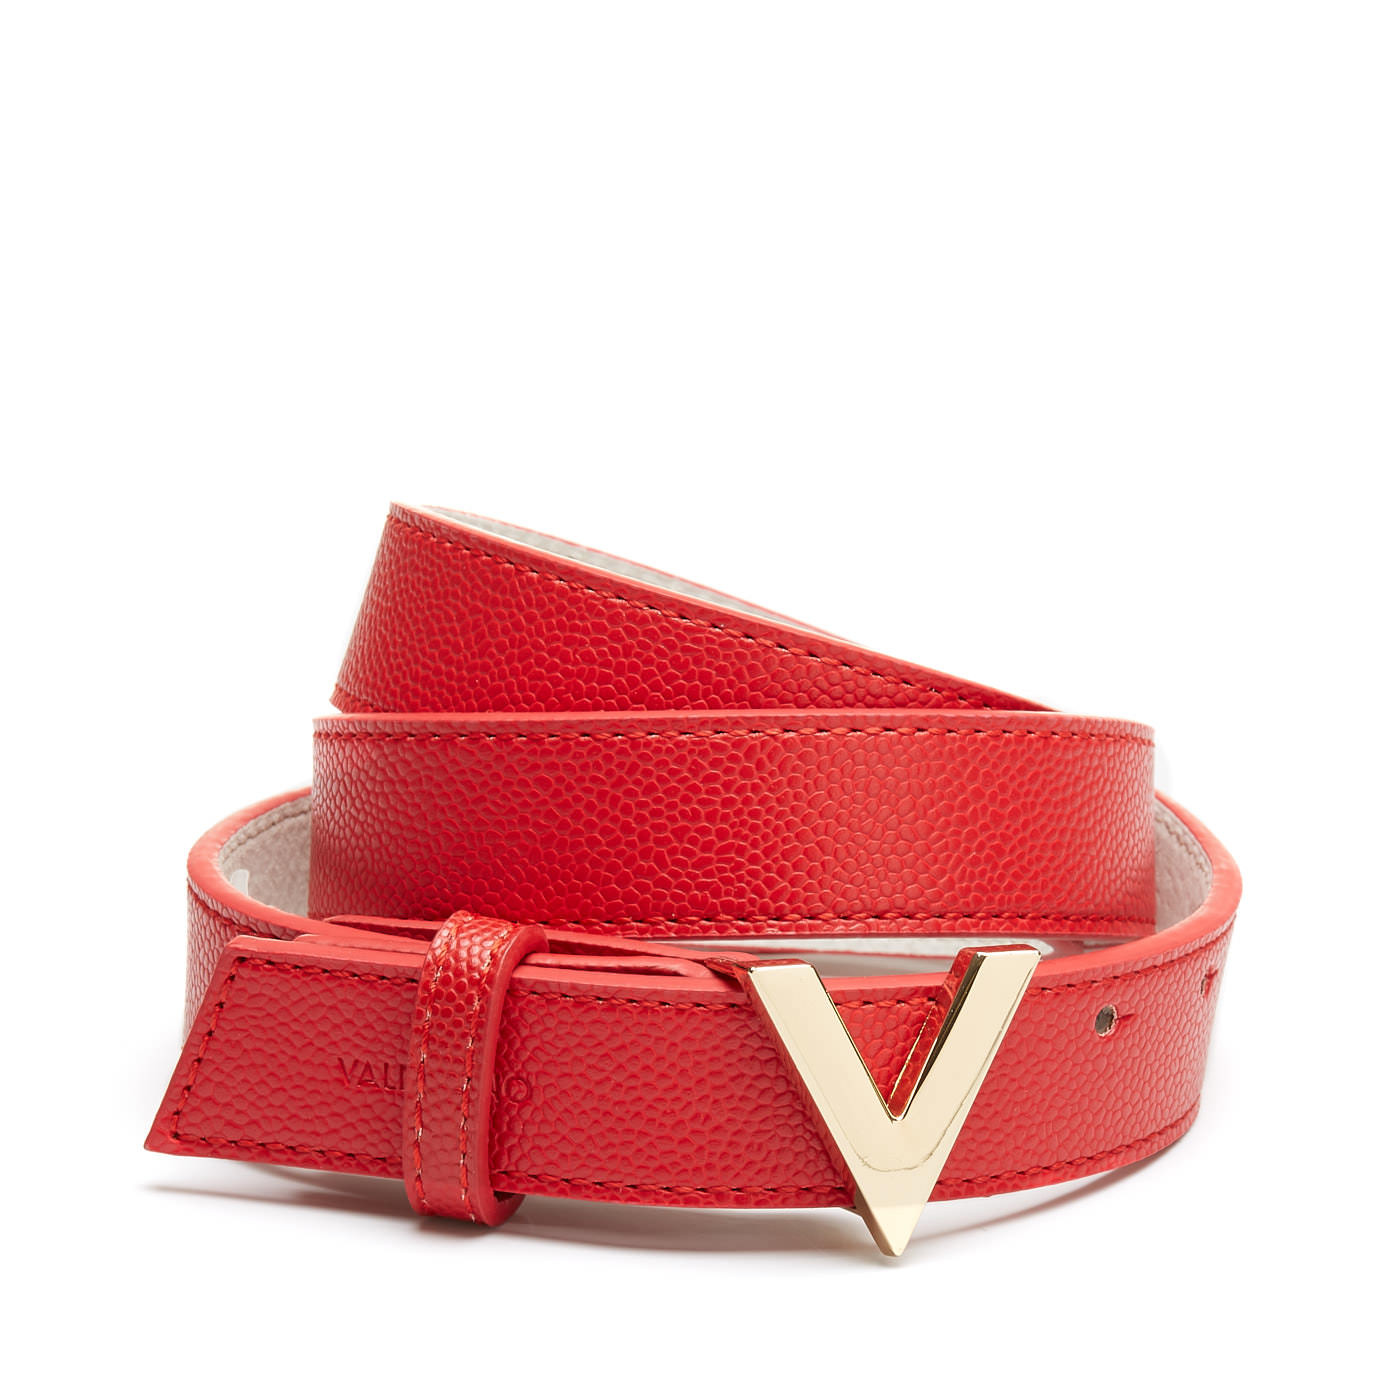 Valentino Divina Rood Dames Riem VCS1R456GBXCW4ROSSO